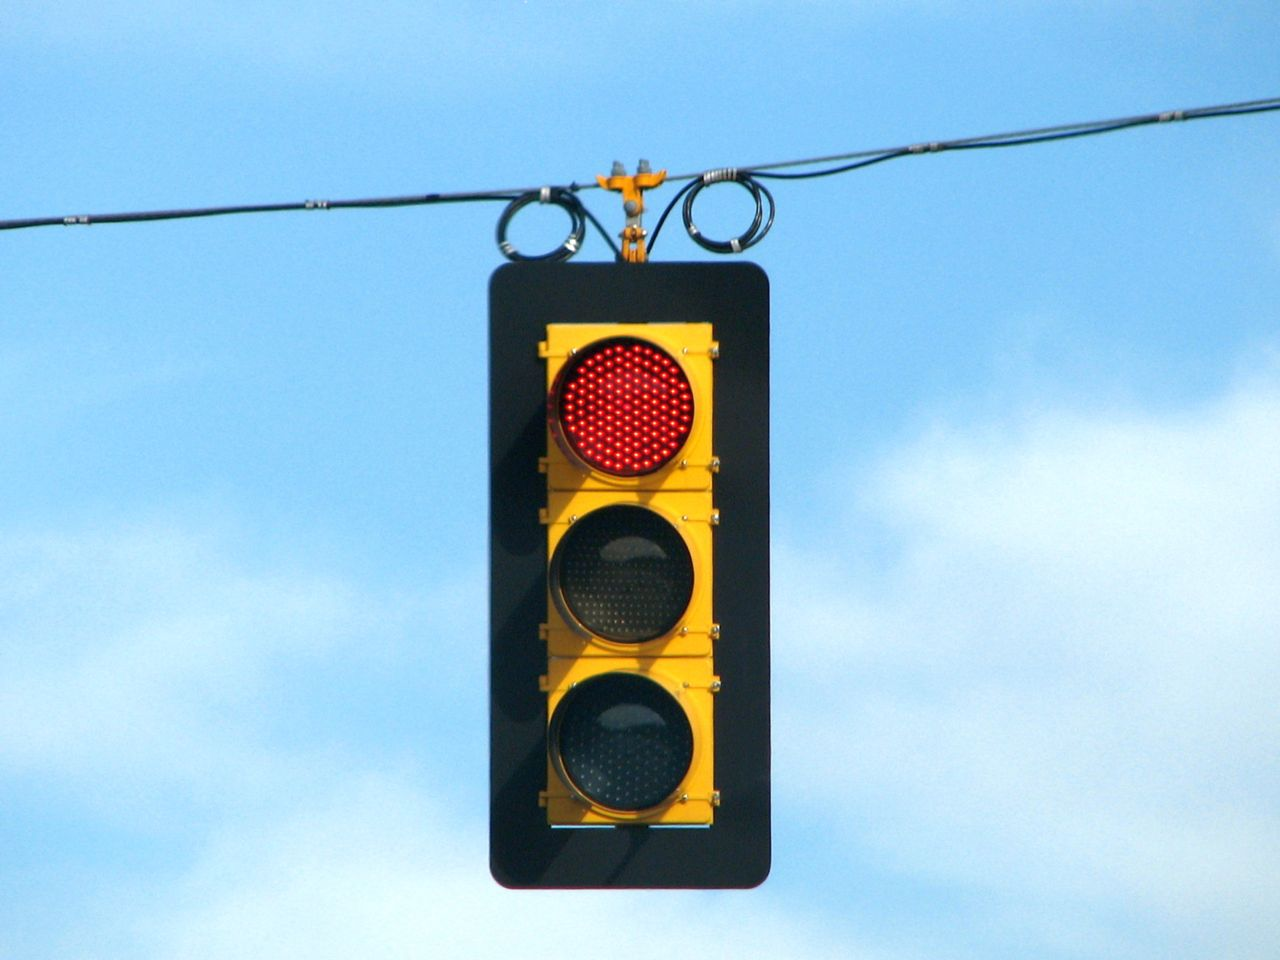 michigan red light accident lawyers